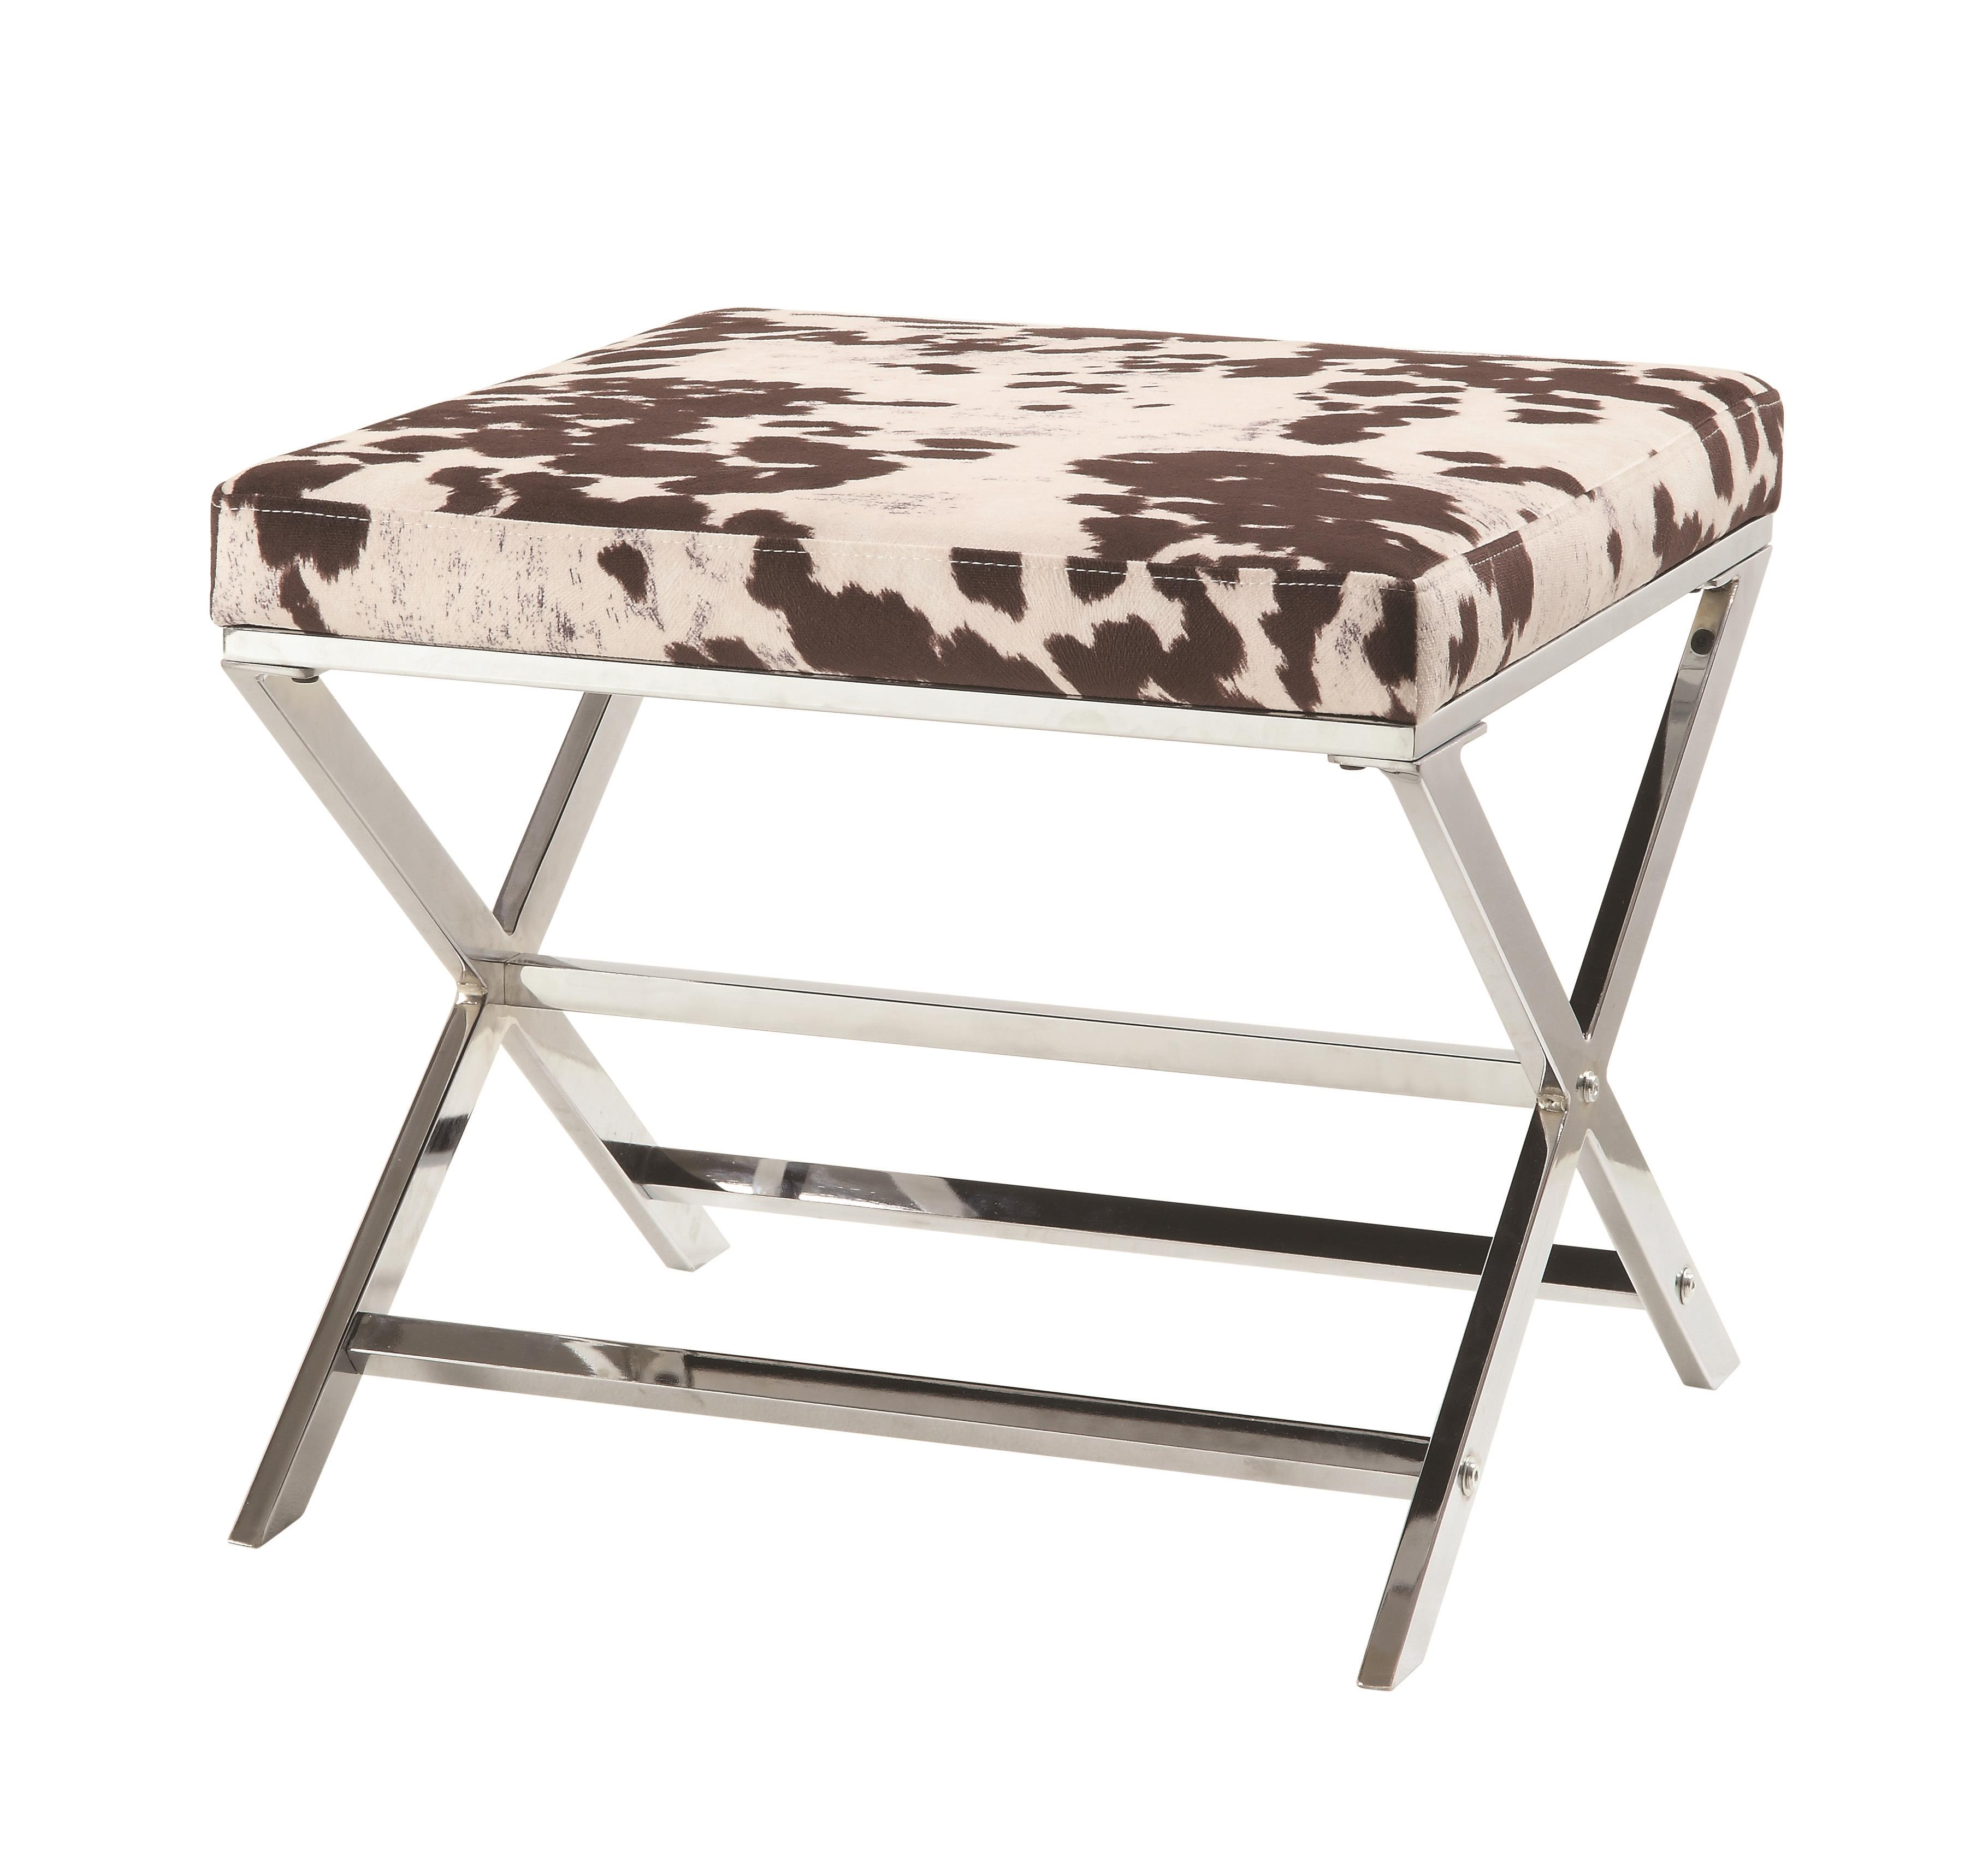 Coaster Contemporary Stool in White and Brown Cow Bonded Leatherette